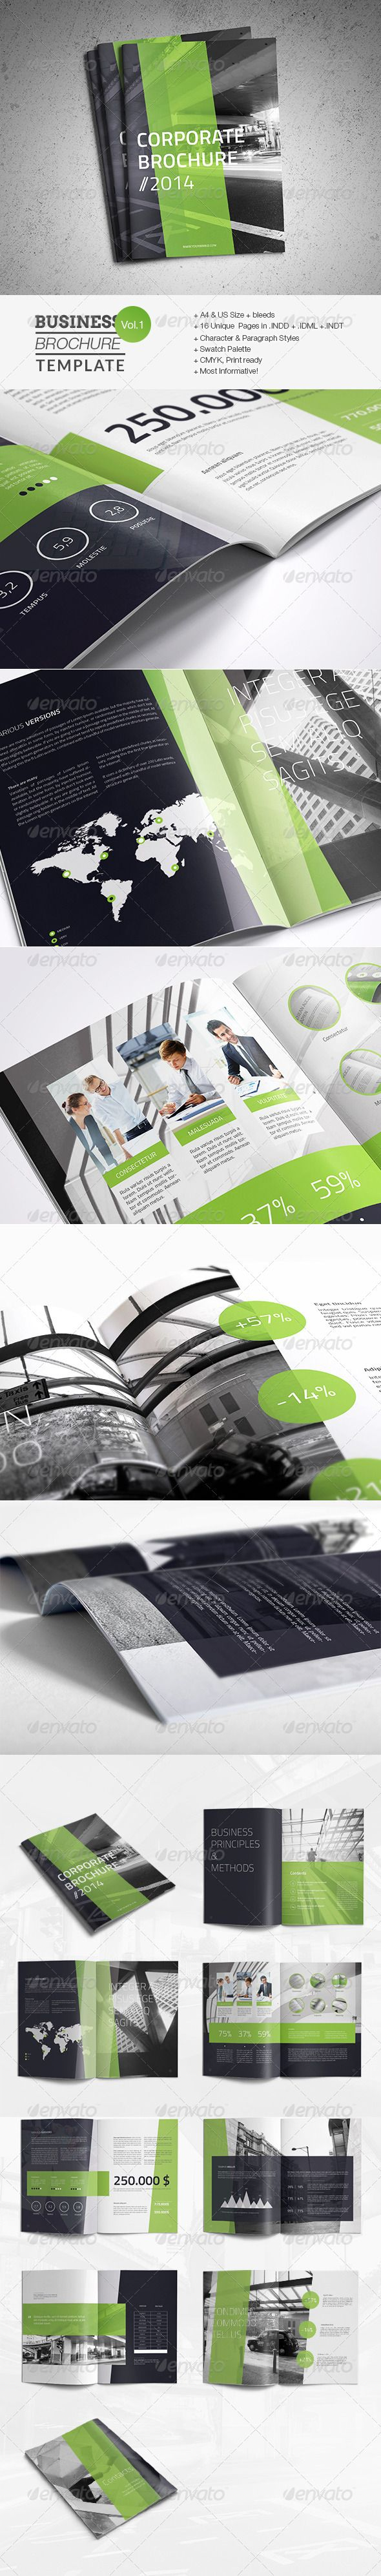 Business Brochure Template Hi! Thank you for your purchase! This wonderfully light, professional and convenient template. Template is useful for editing. All layers are separated and well organized. It contains 16 unique pages, so that you can configure your own brochure with the required number of pages for you. Simply set up a template. Export in .pdf and take it to print! Enjoy.